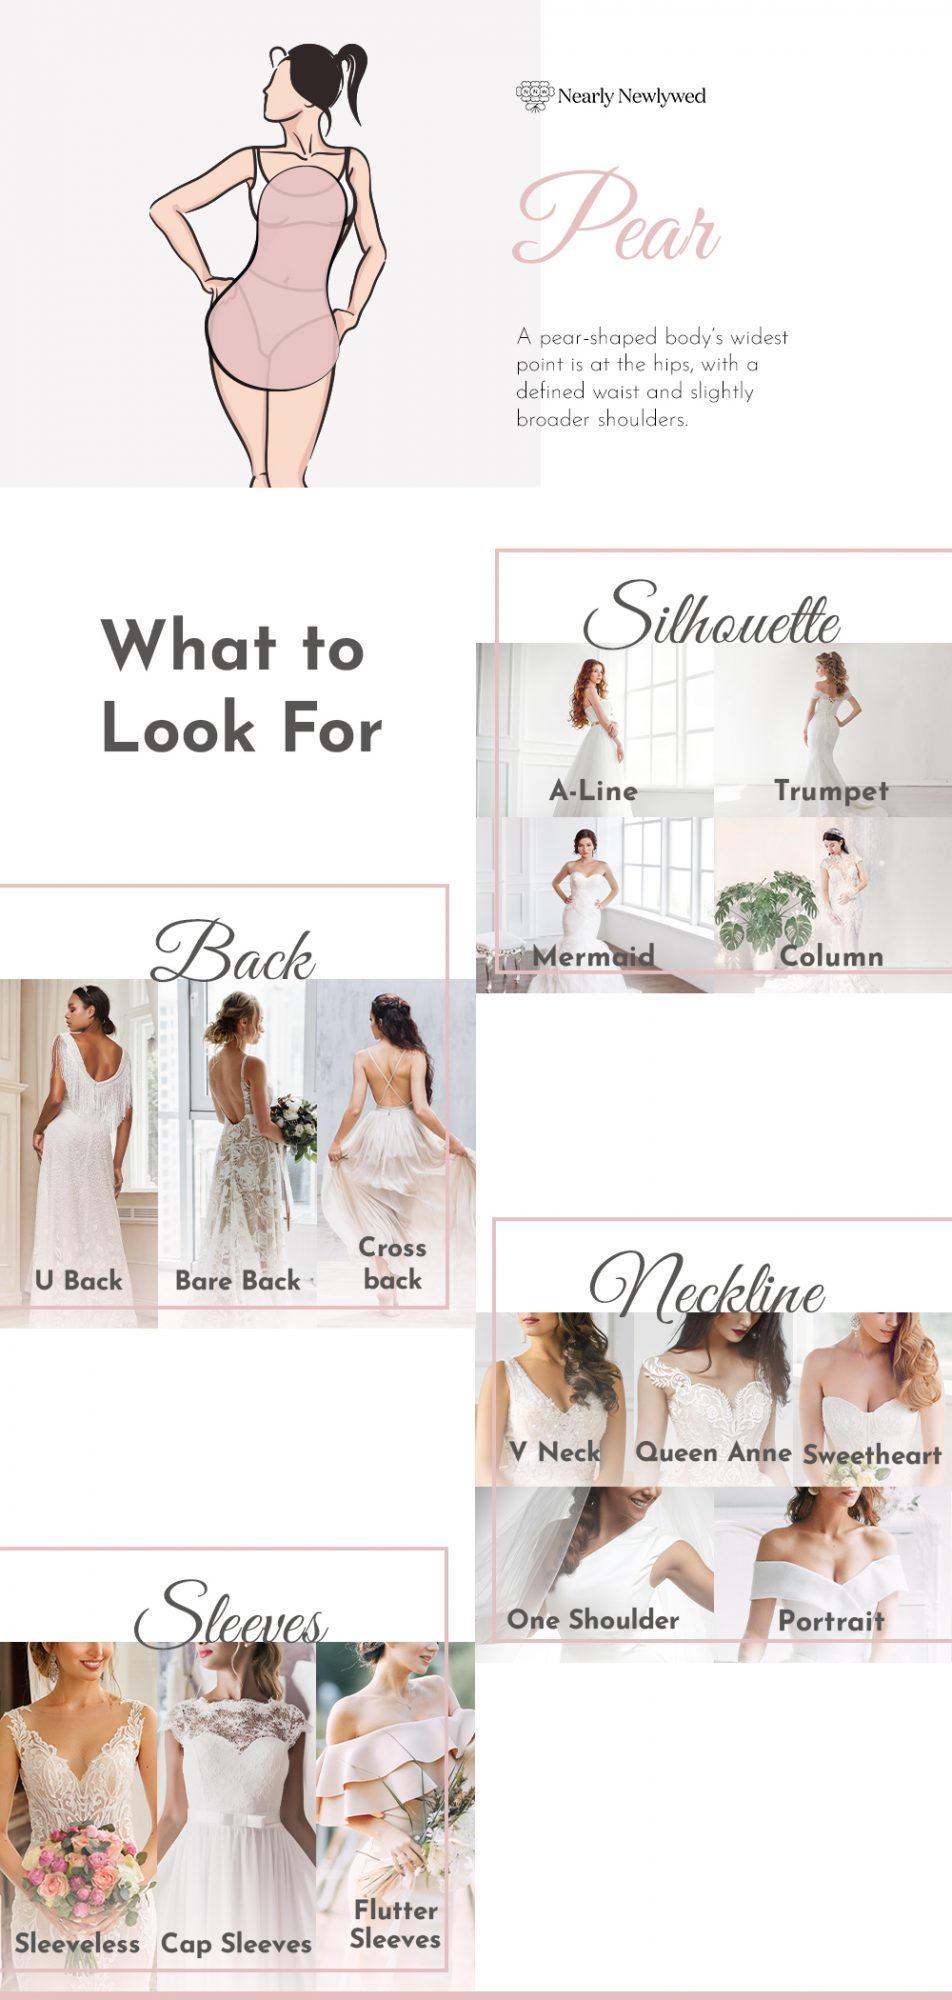 Wedding dress recommendations for pear bodies